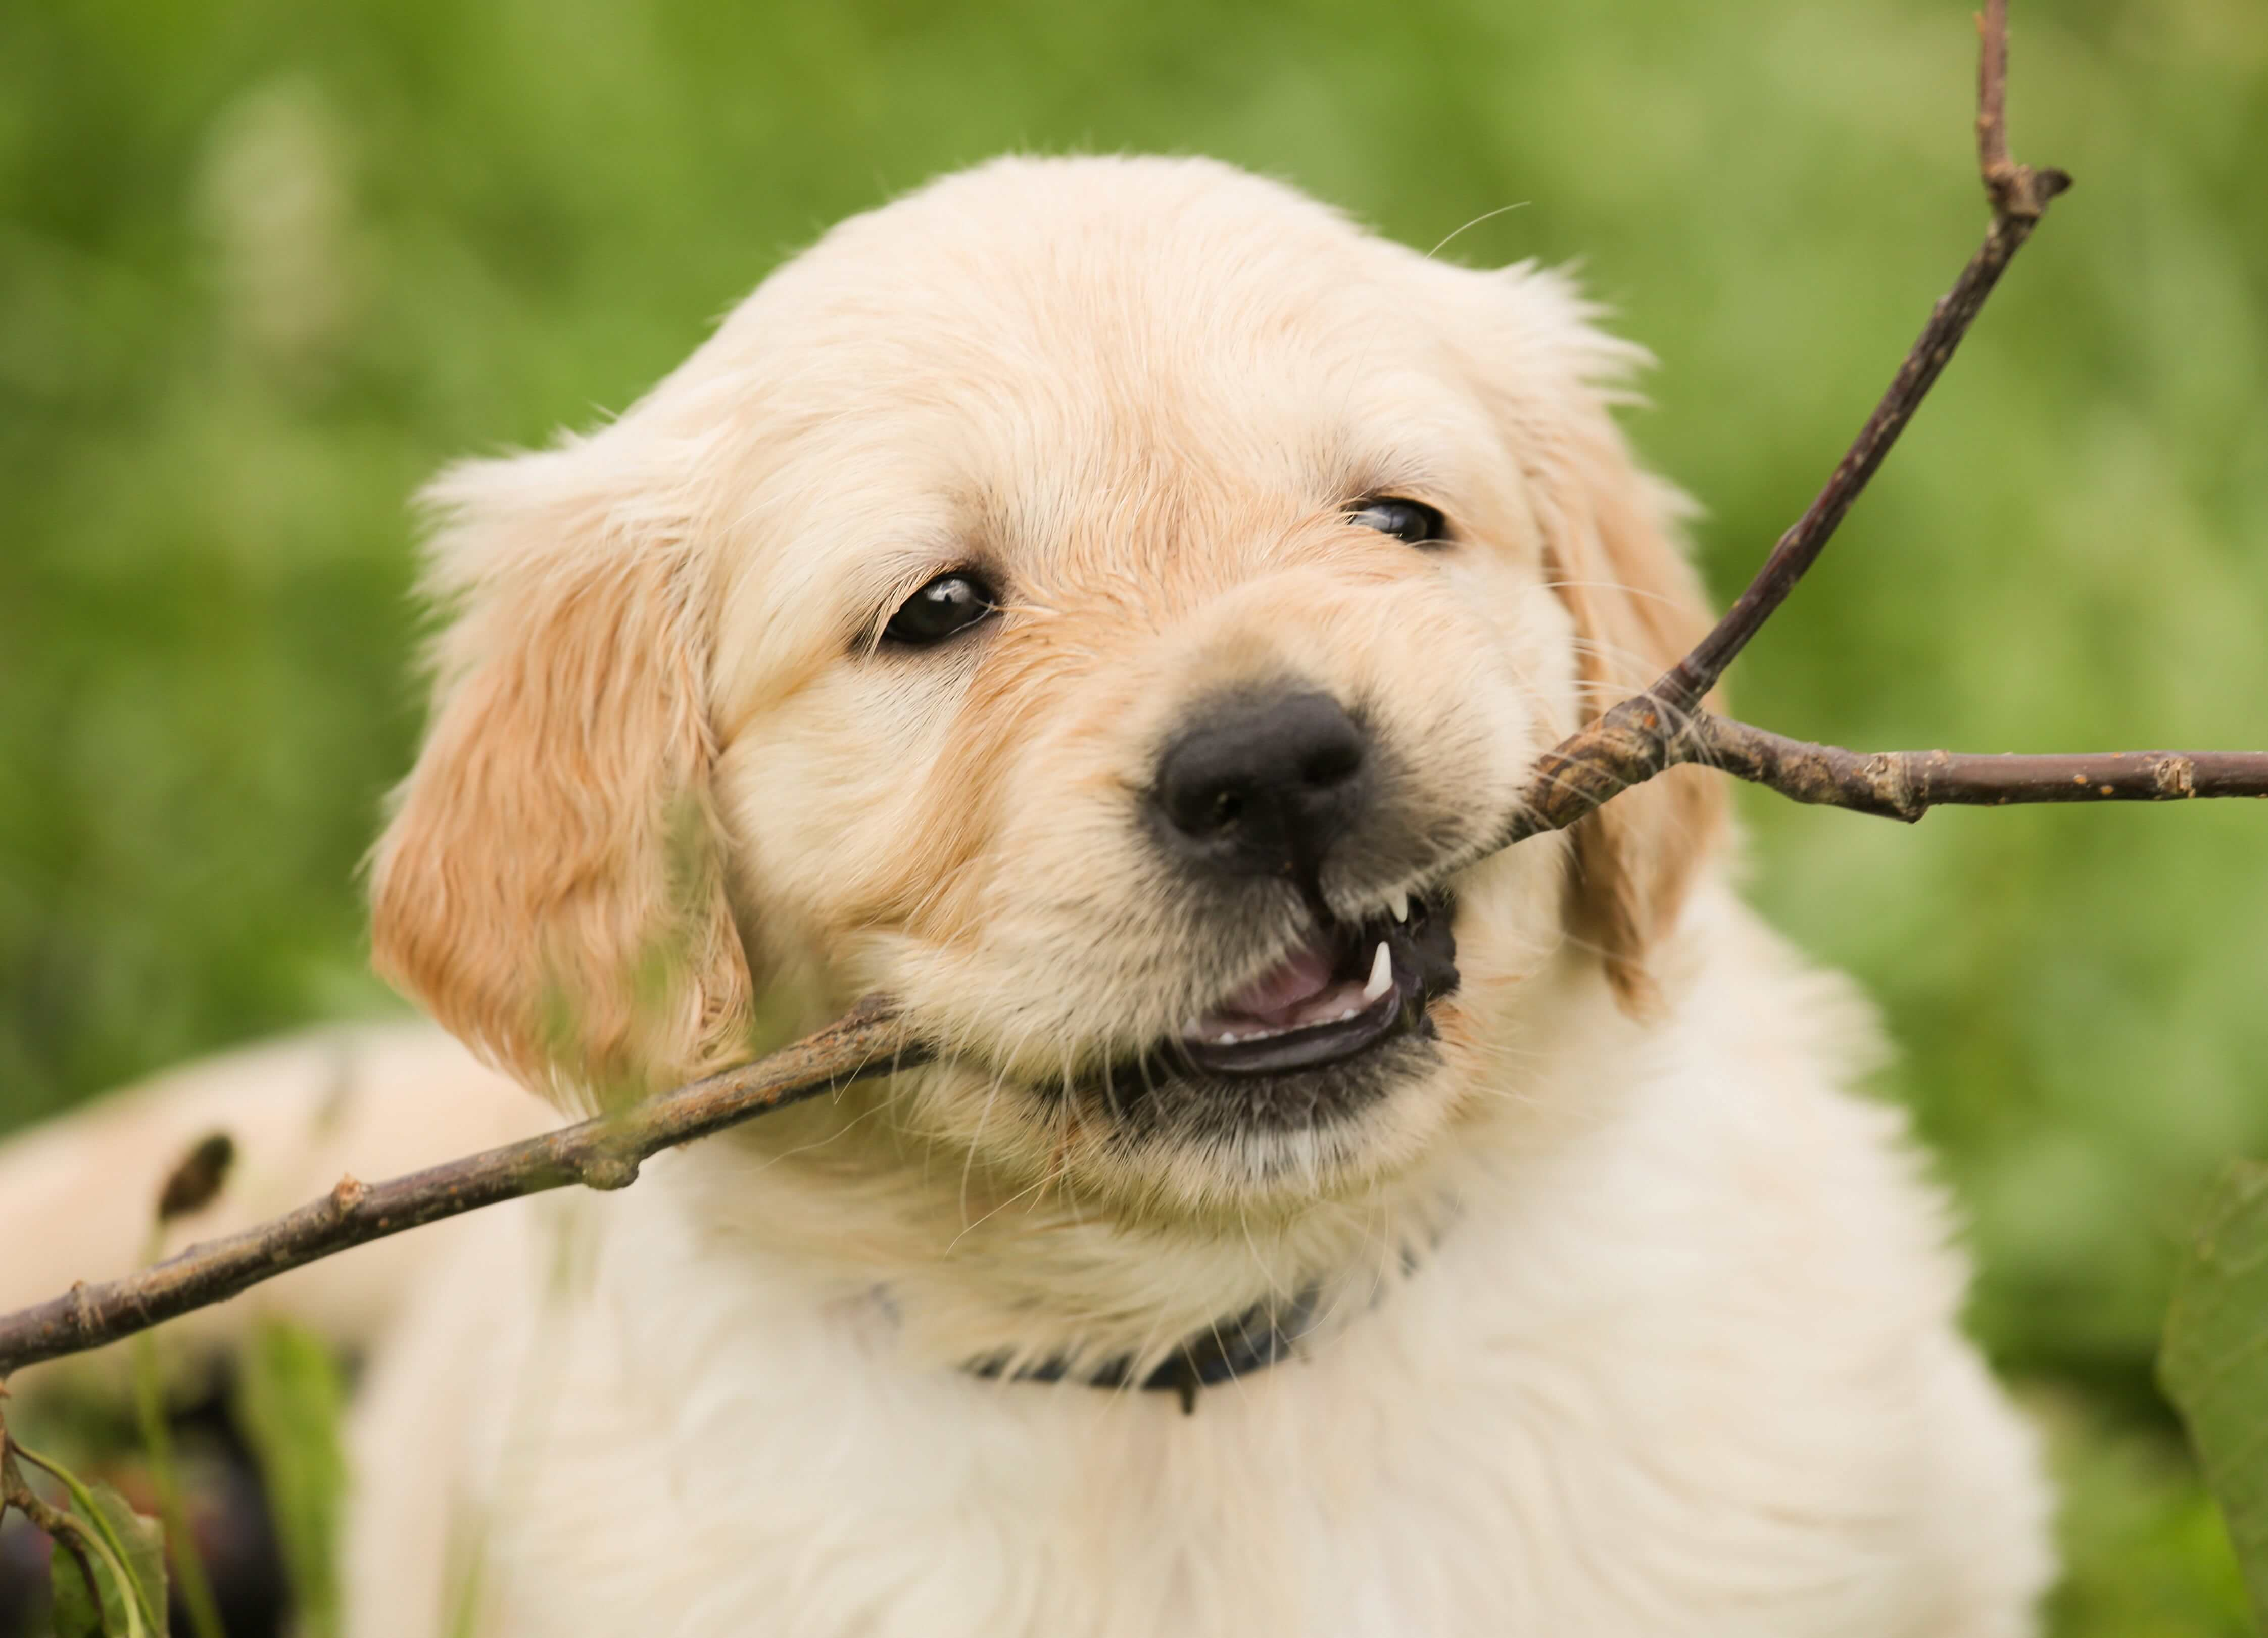 Cute golden labrador puppy with a stick in it's mouth